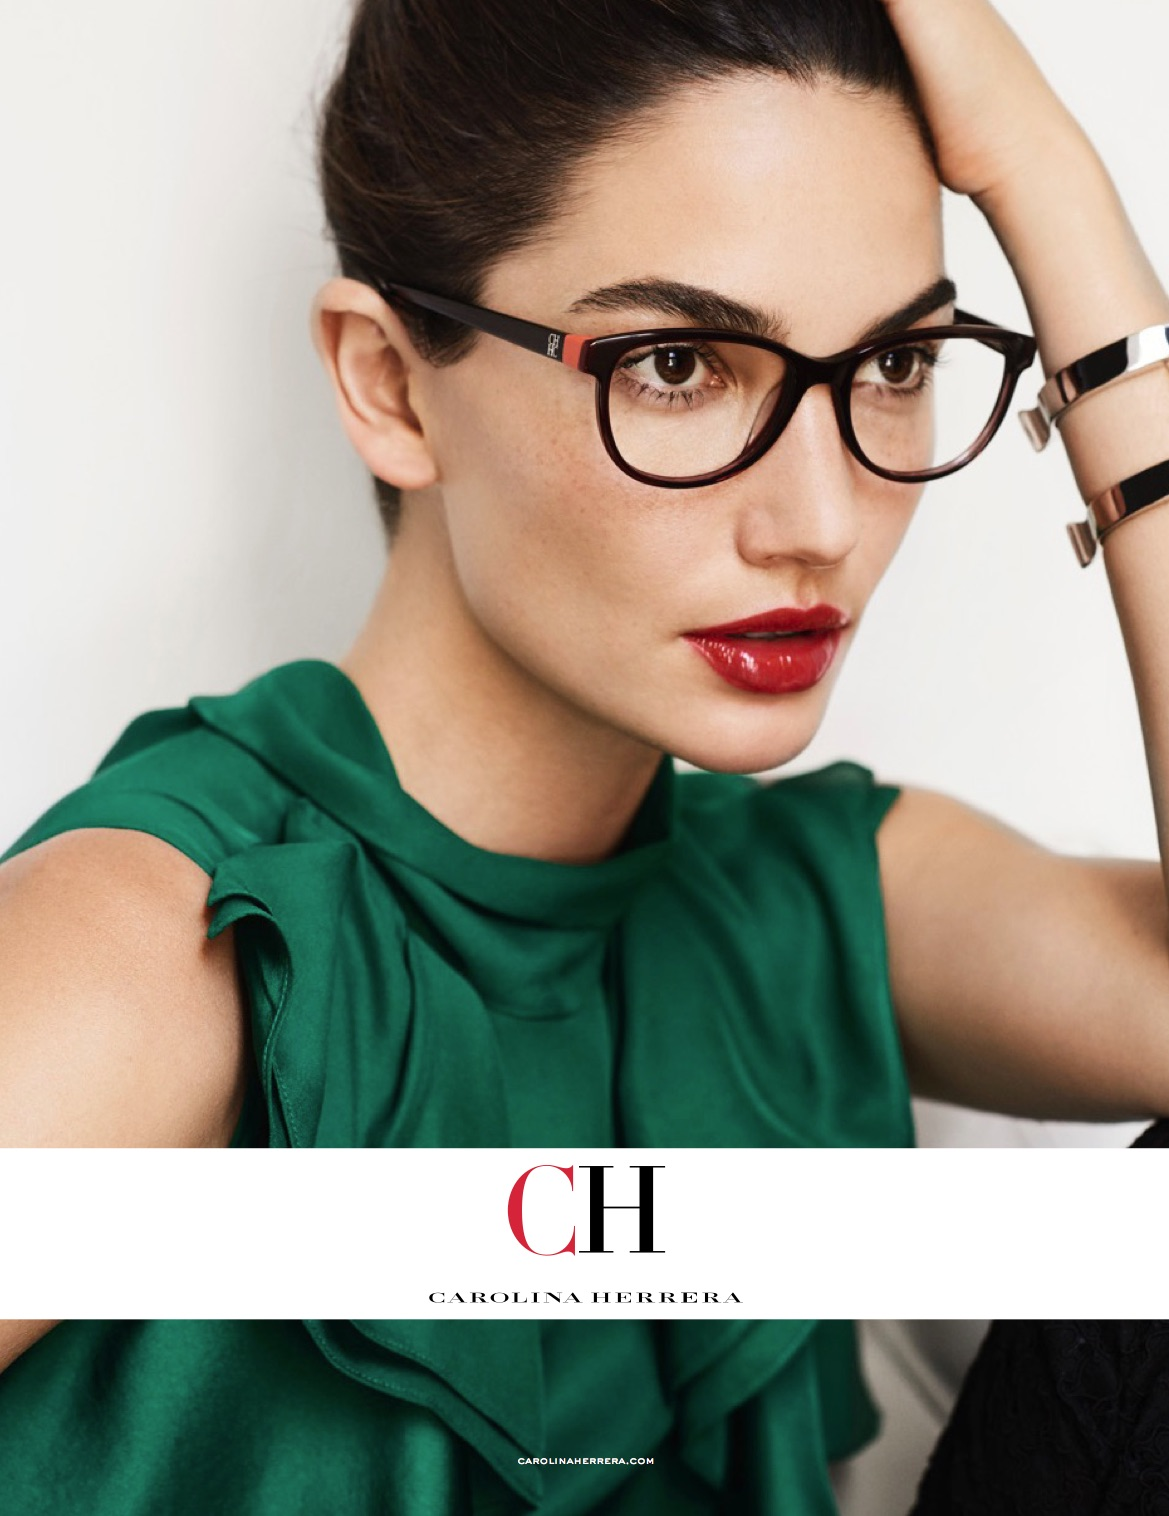 30% OFF Carolina Herrara - For a limited time, there is a massive 30% off all our Carolina Herrara frames!